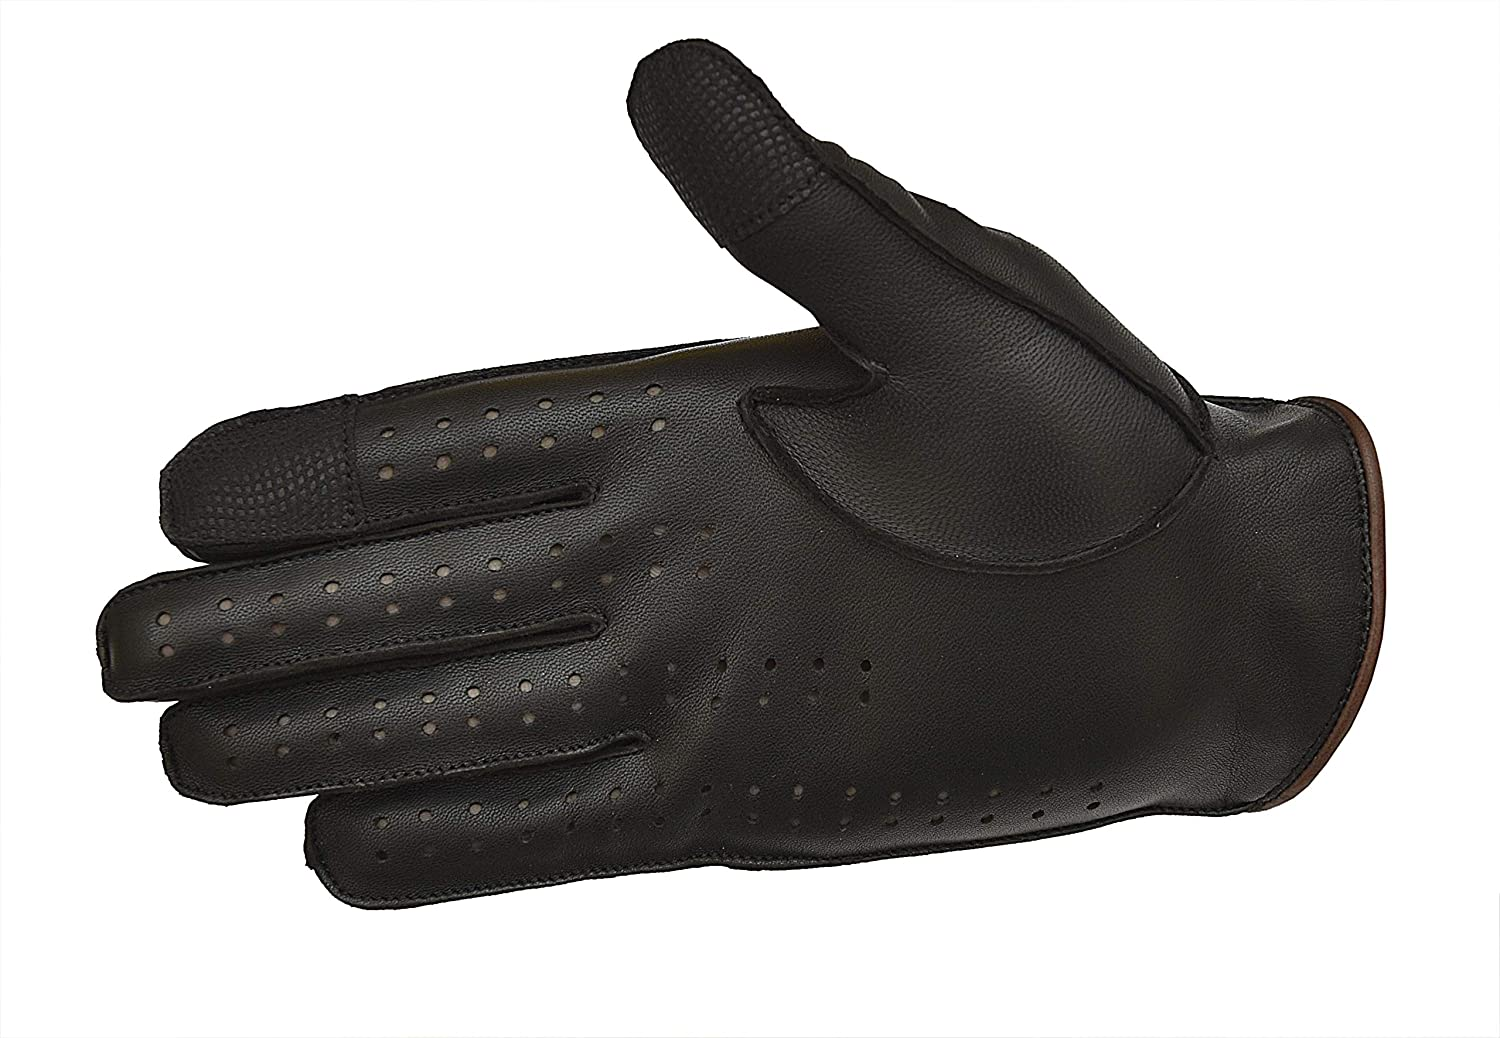 Black//Brown, Medium Men Genuine Leather Driving Texting Touch Screen Unlined Knuckle Holes Gloves